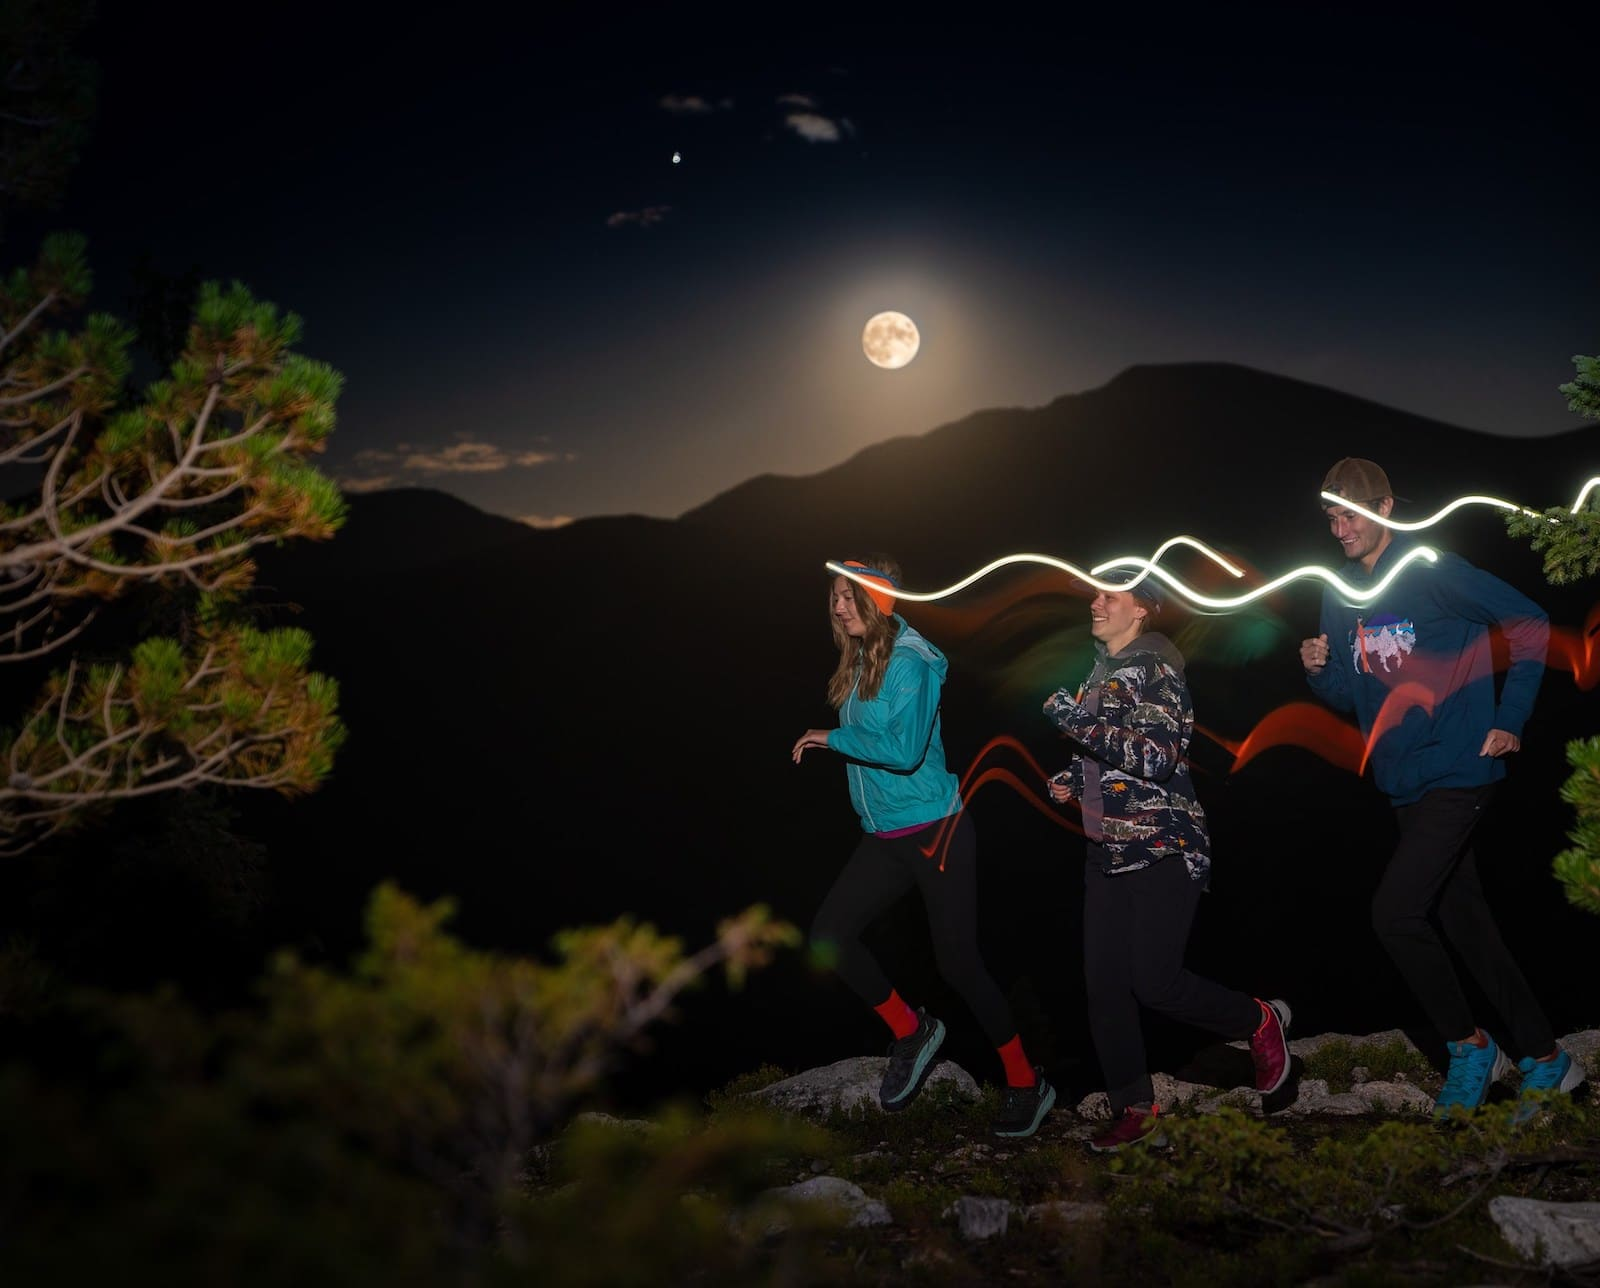 Image of people on the Full Moon Run in Winter Park, Colorado